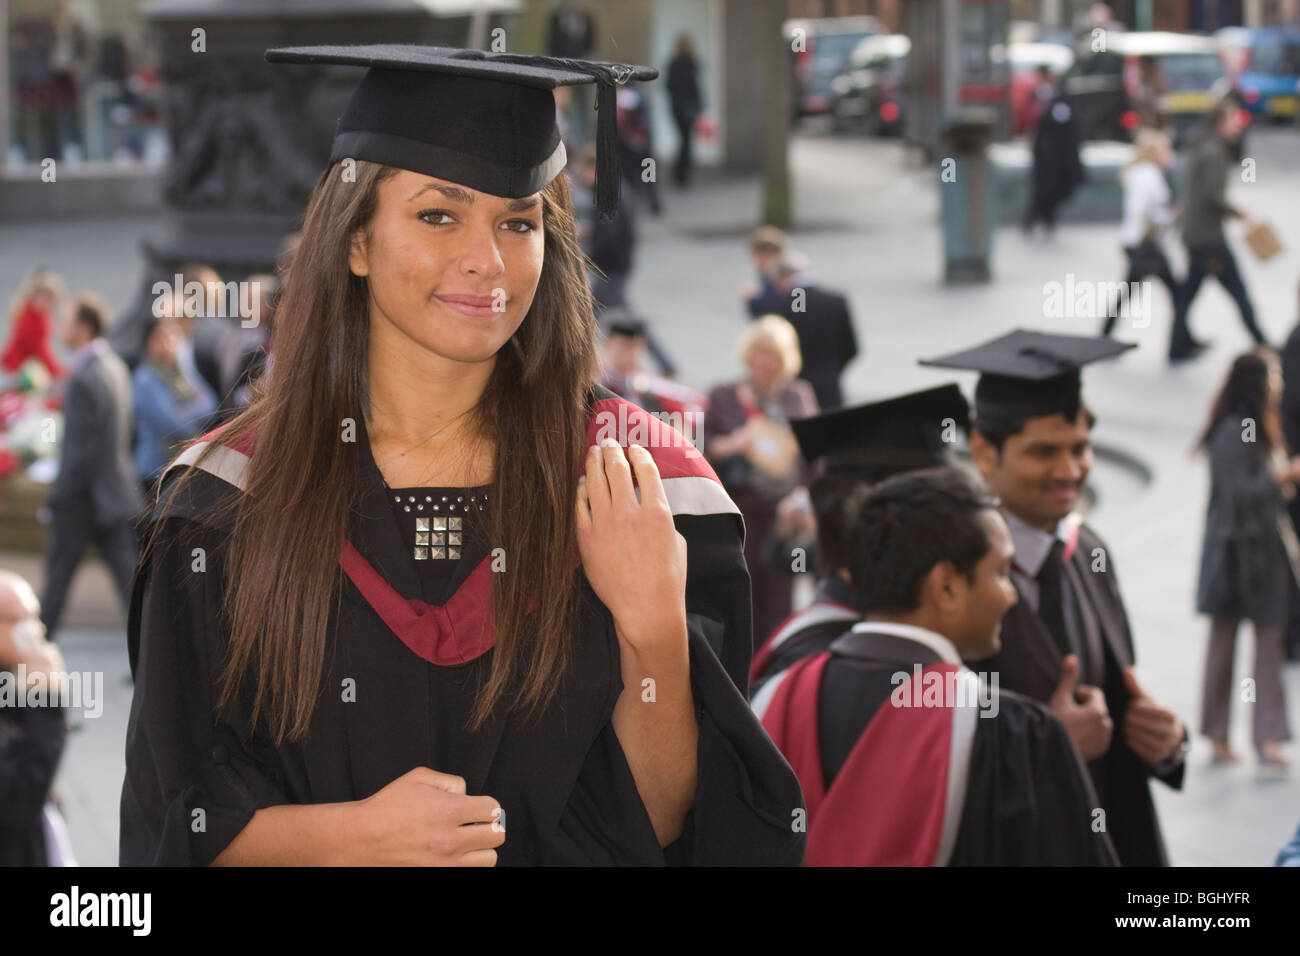 portrait a young woman on graduation day - Stock Image